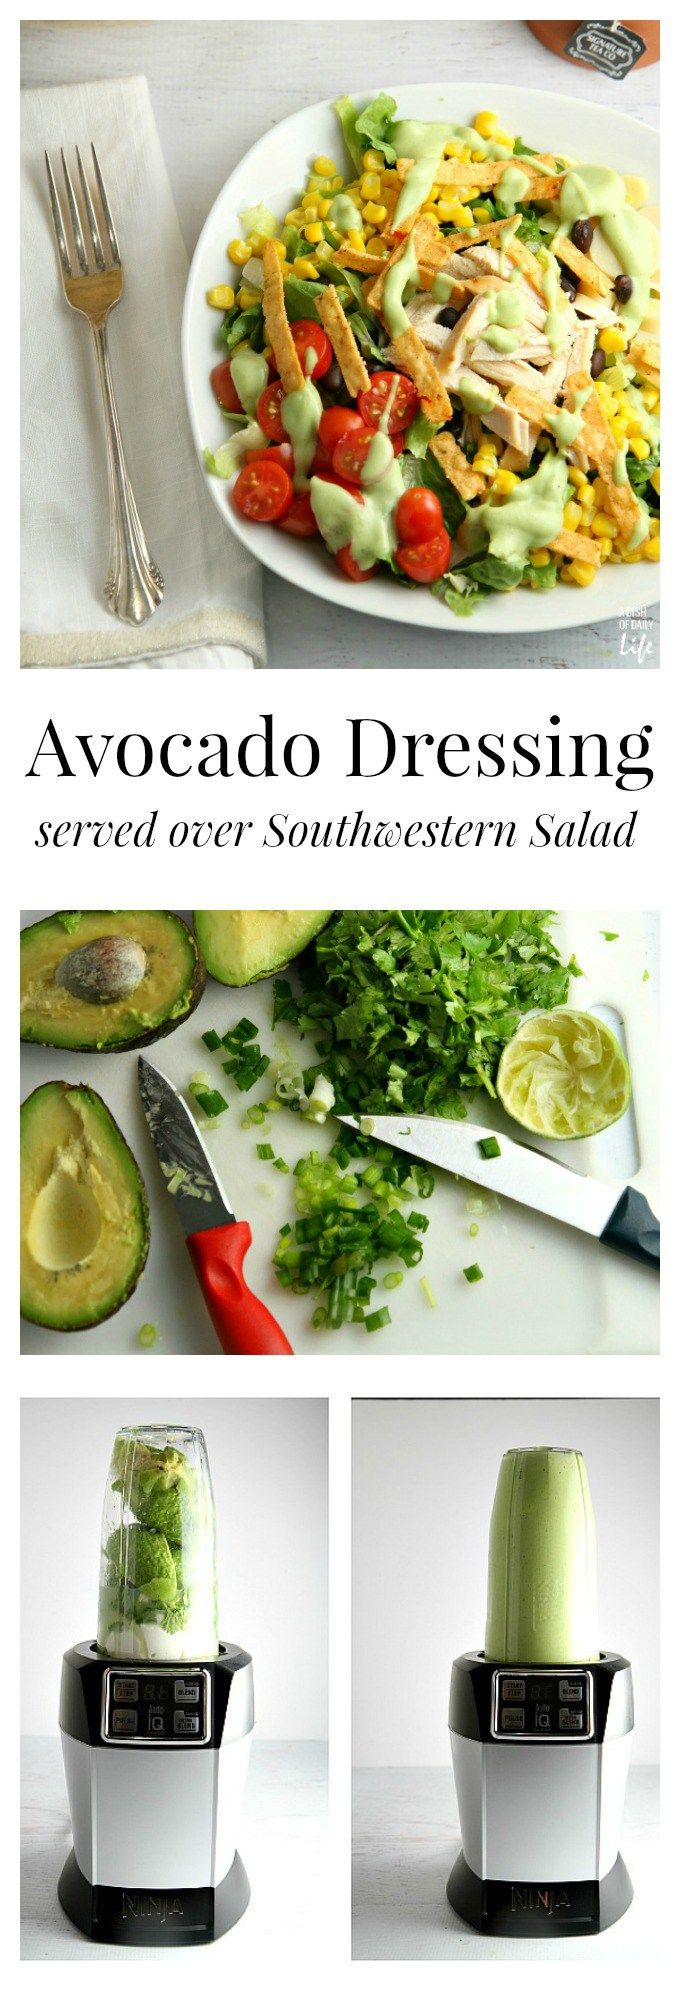 This Avocado Dressing is quite versatile...use it as a dip for vegetables, slather it on a sandwich or use it as a salad dressing! Shown with a Southwestern style salad, this is a great way to use up your leftover Thanksgiving turkey or a rotisserie chicken.